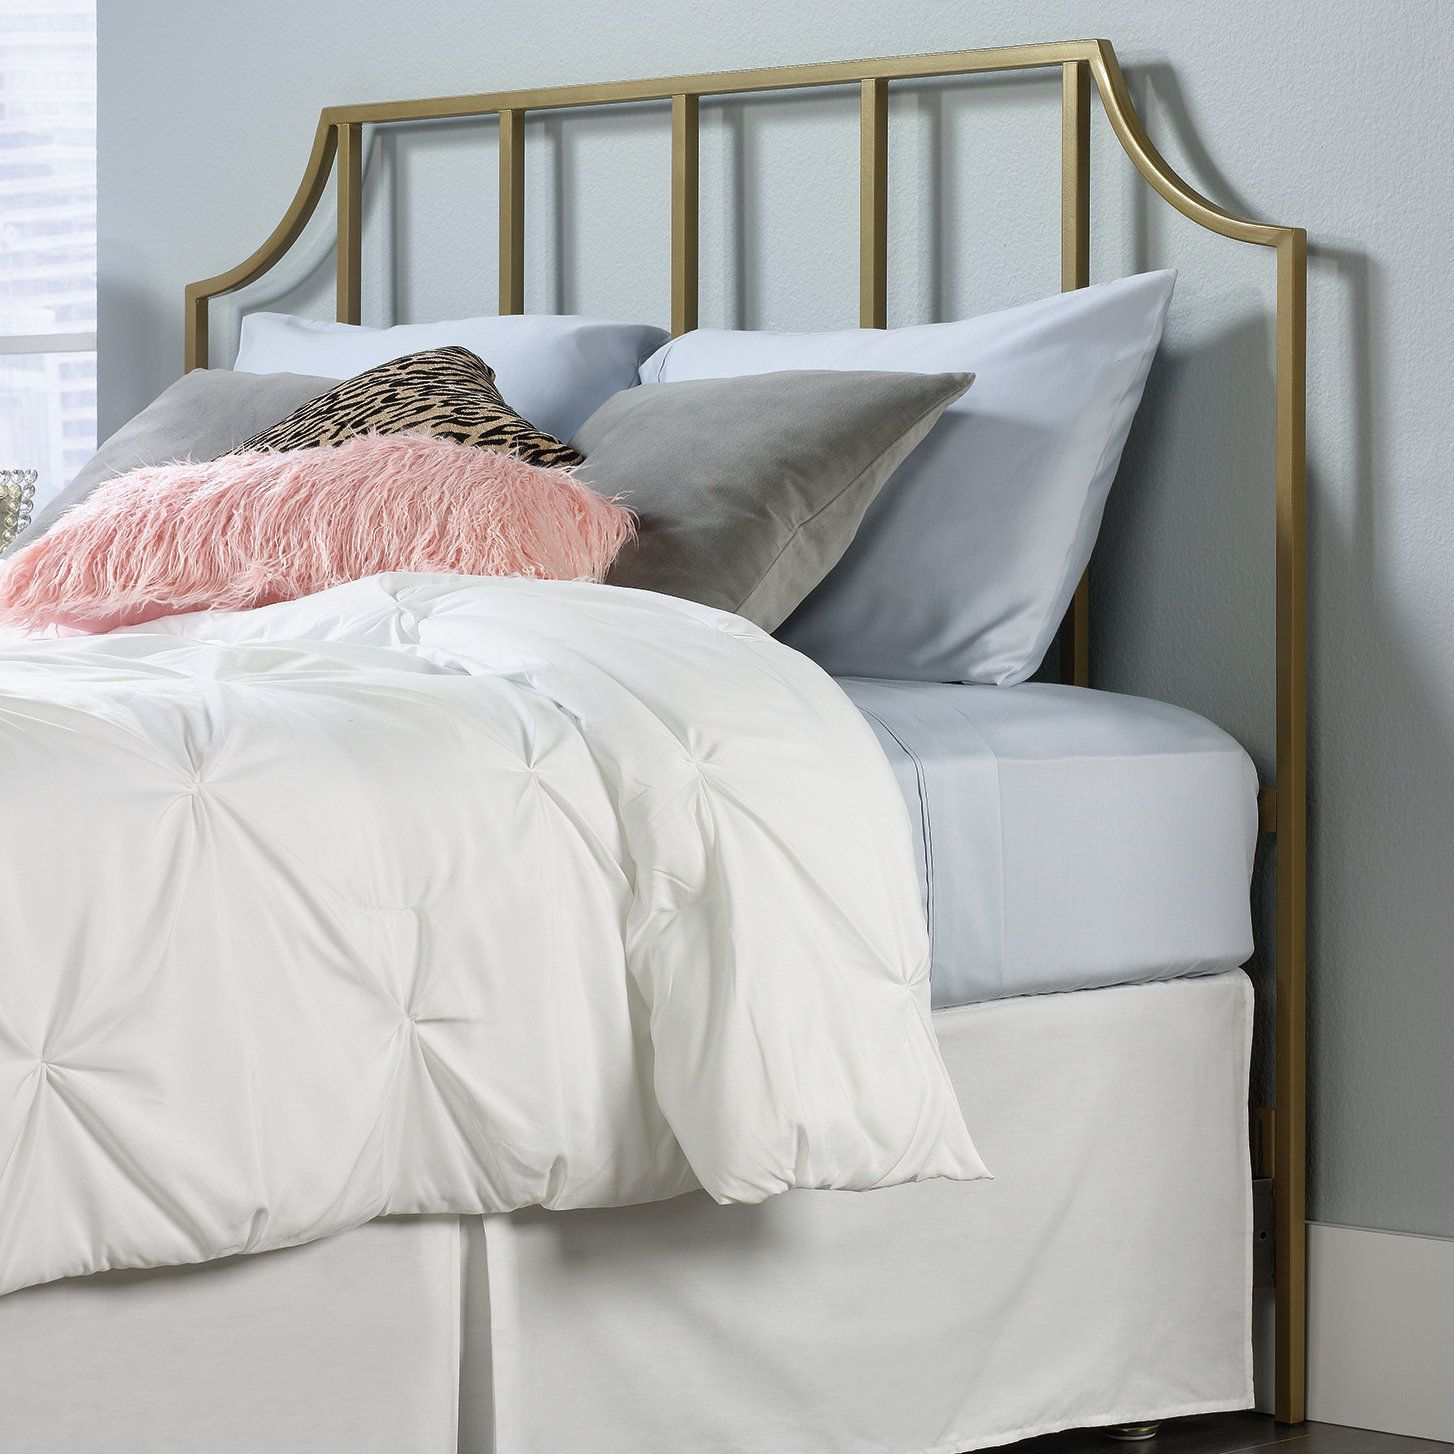 Nichols queen panel headboard products pinterest products